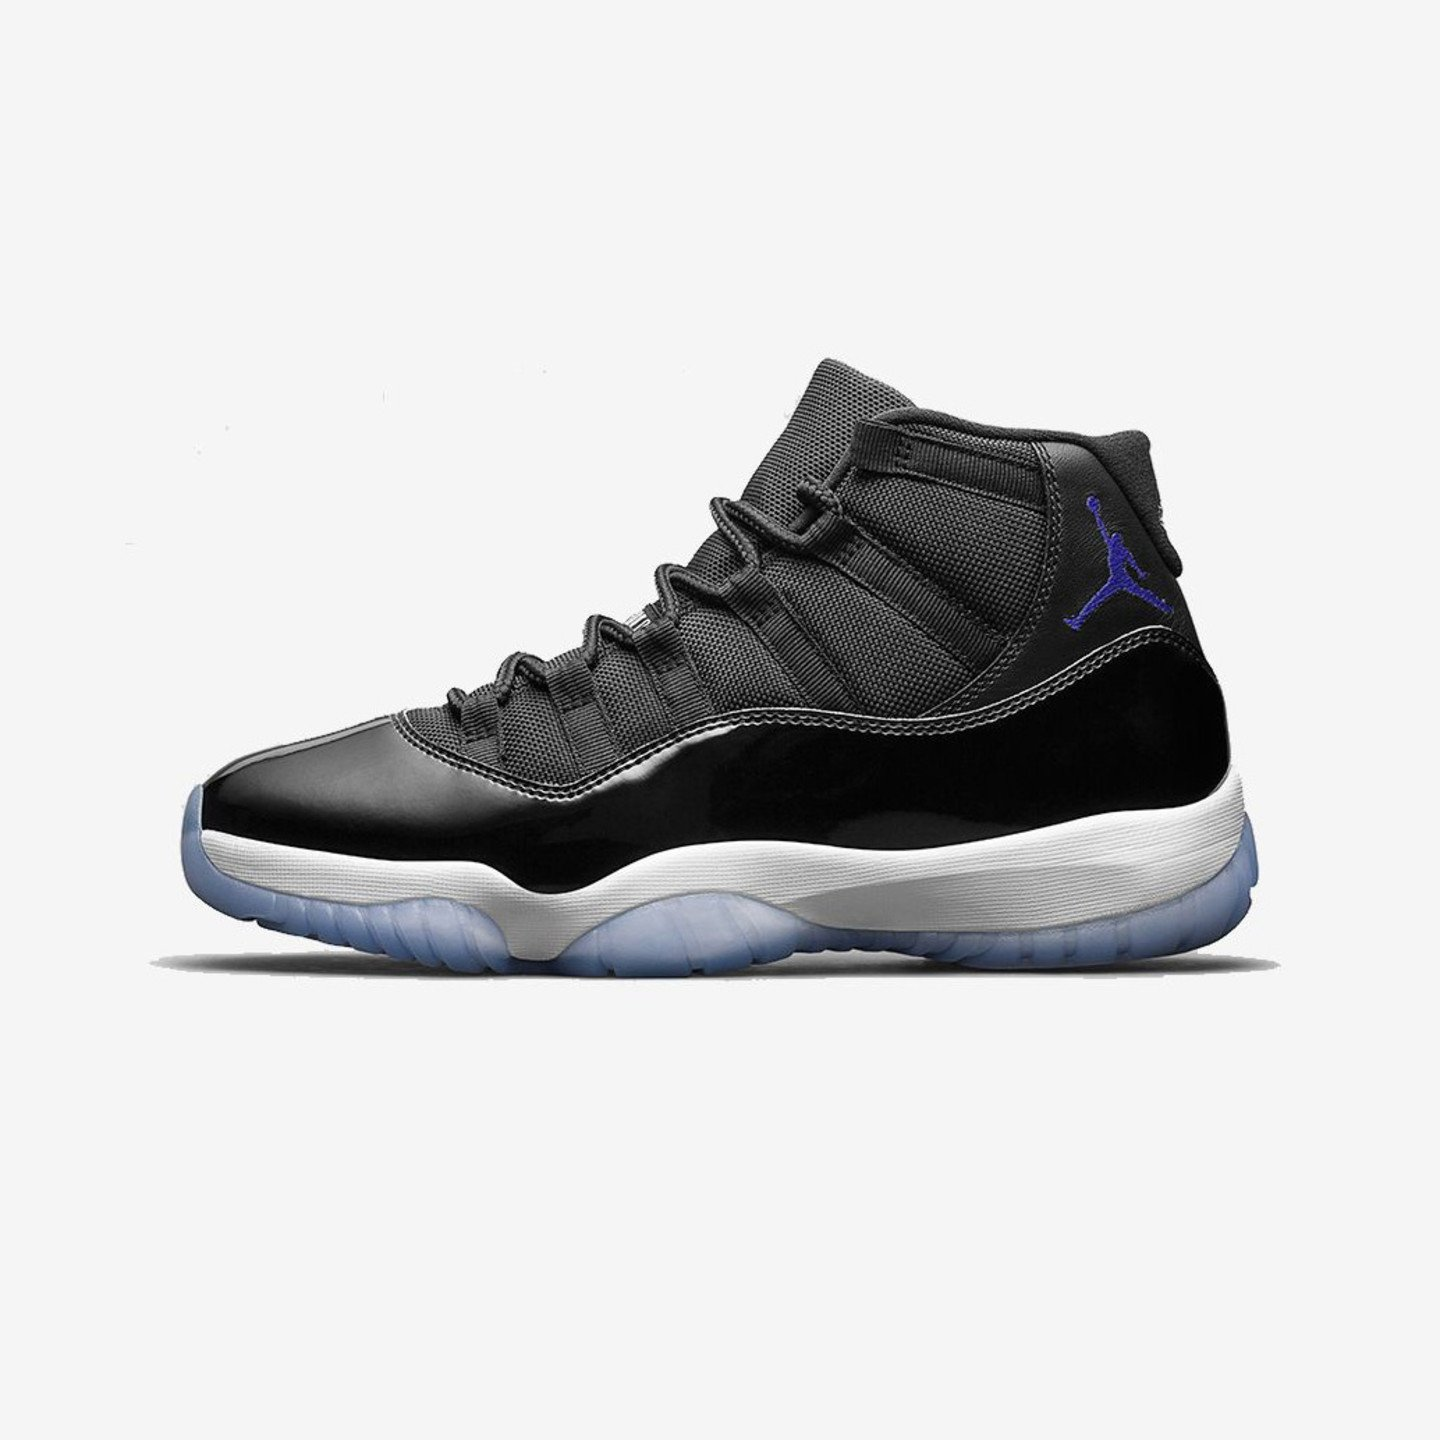 Jordan Air Jordan 11 Retro GS  'Space Jam' Black / Concord / White 378038-003